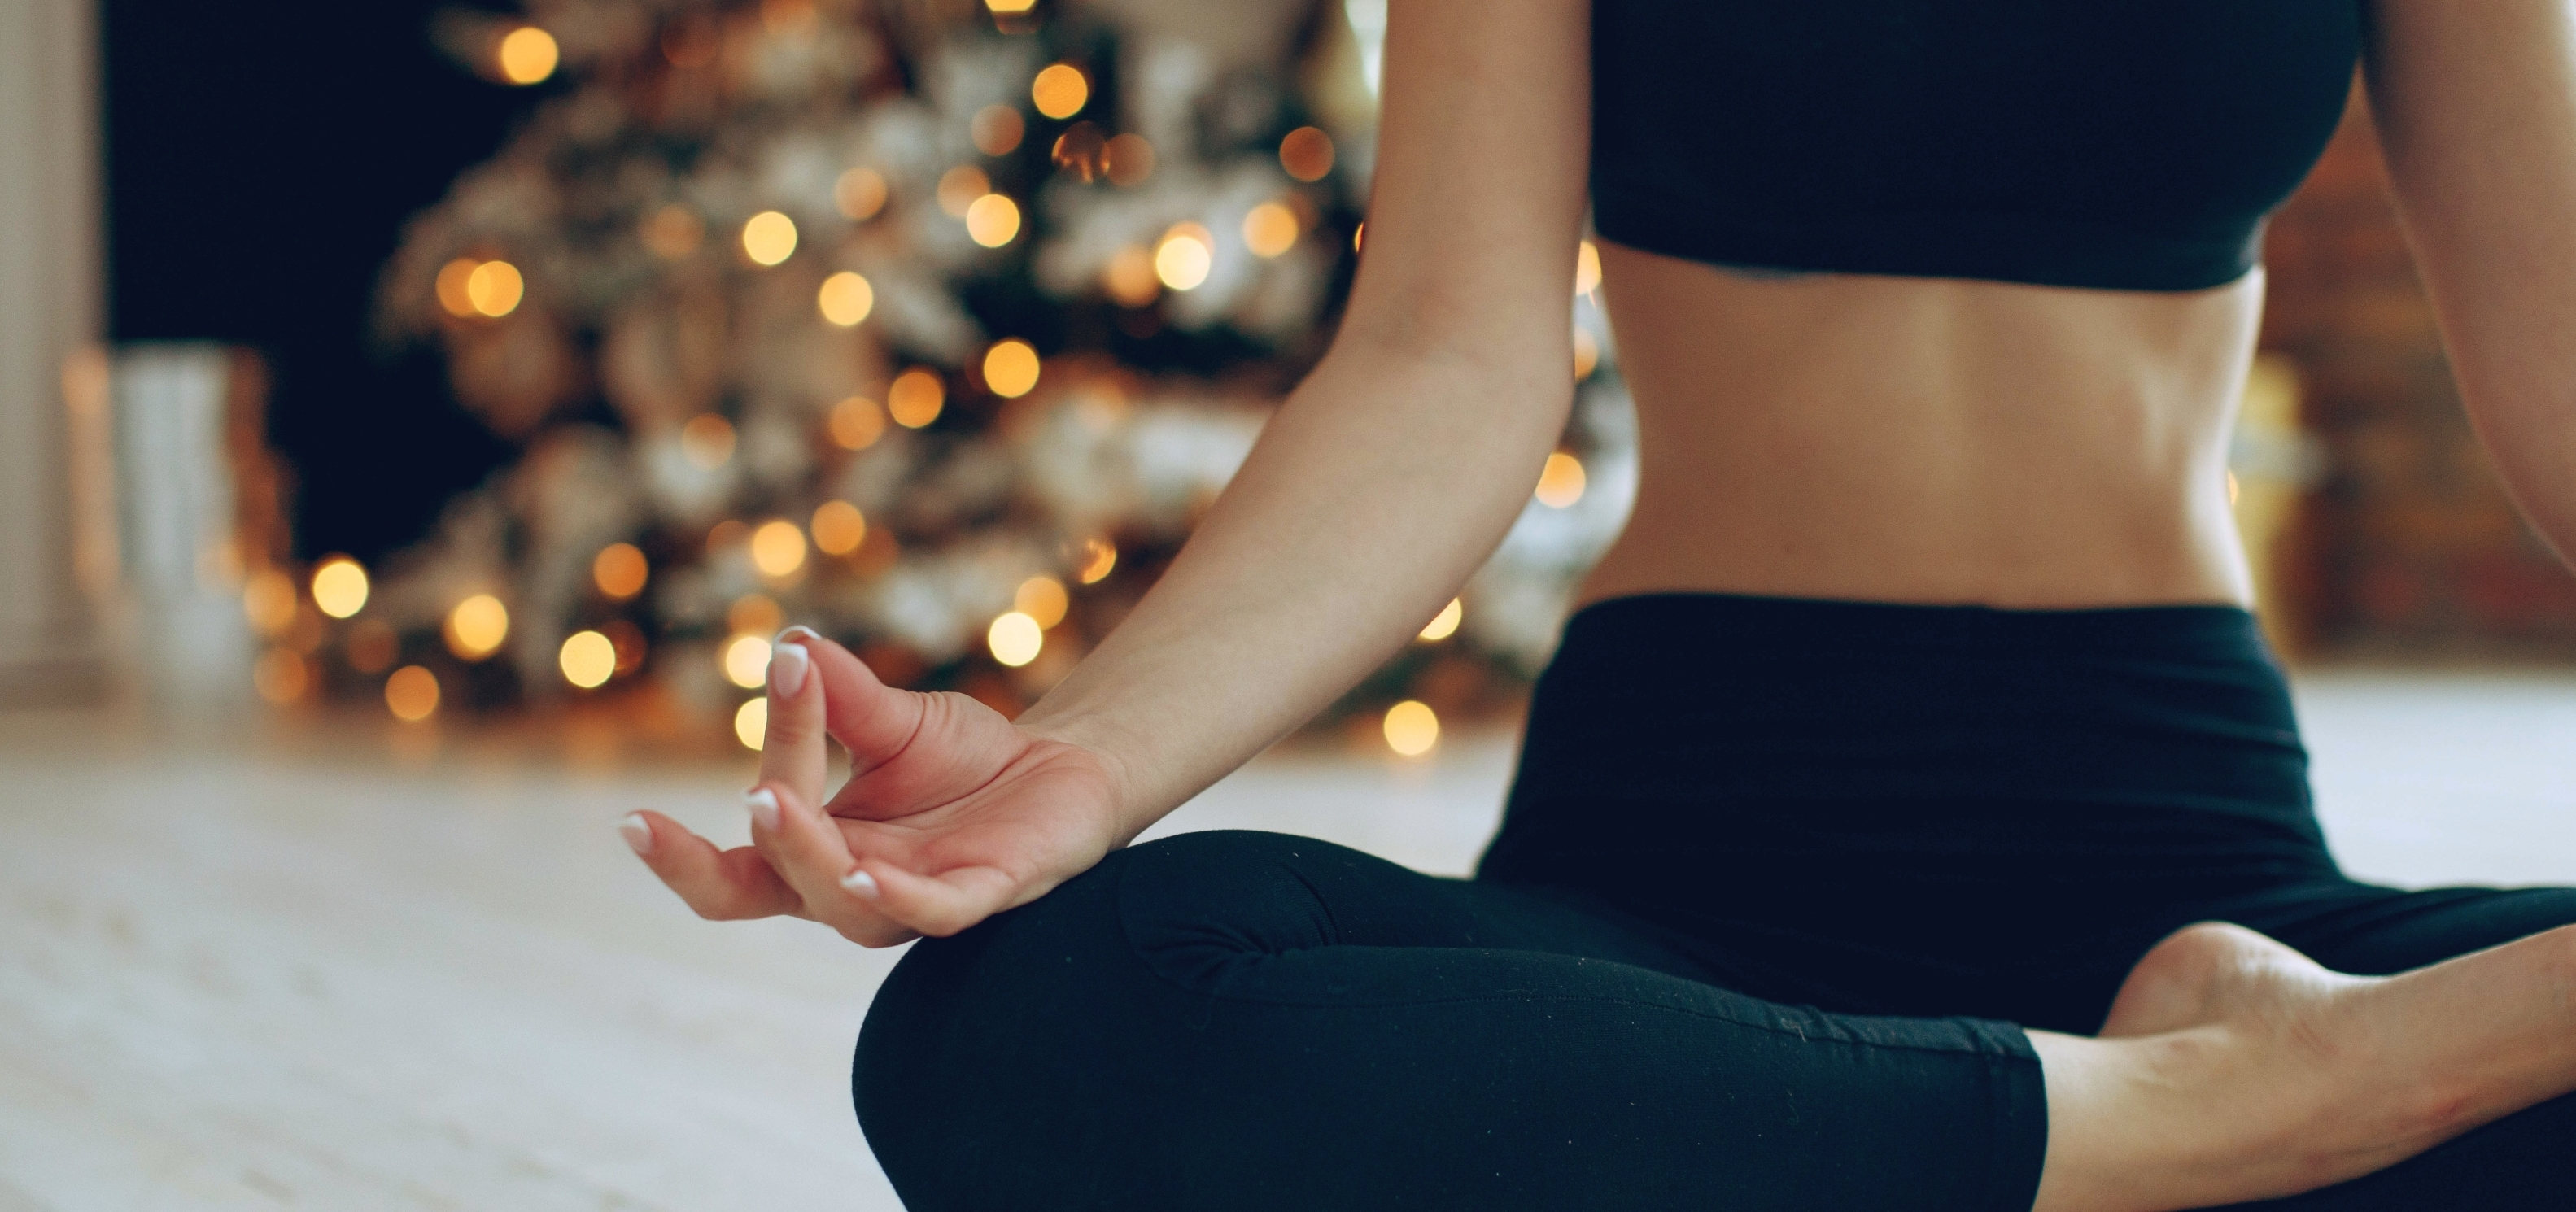 Woman meditating on Christmas